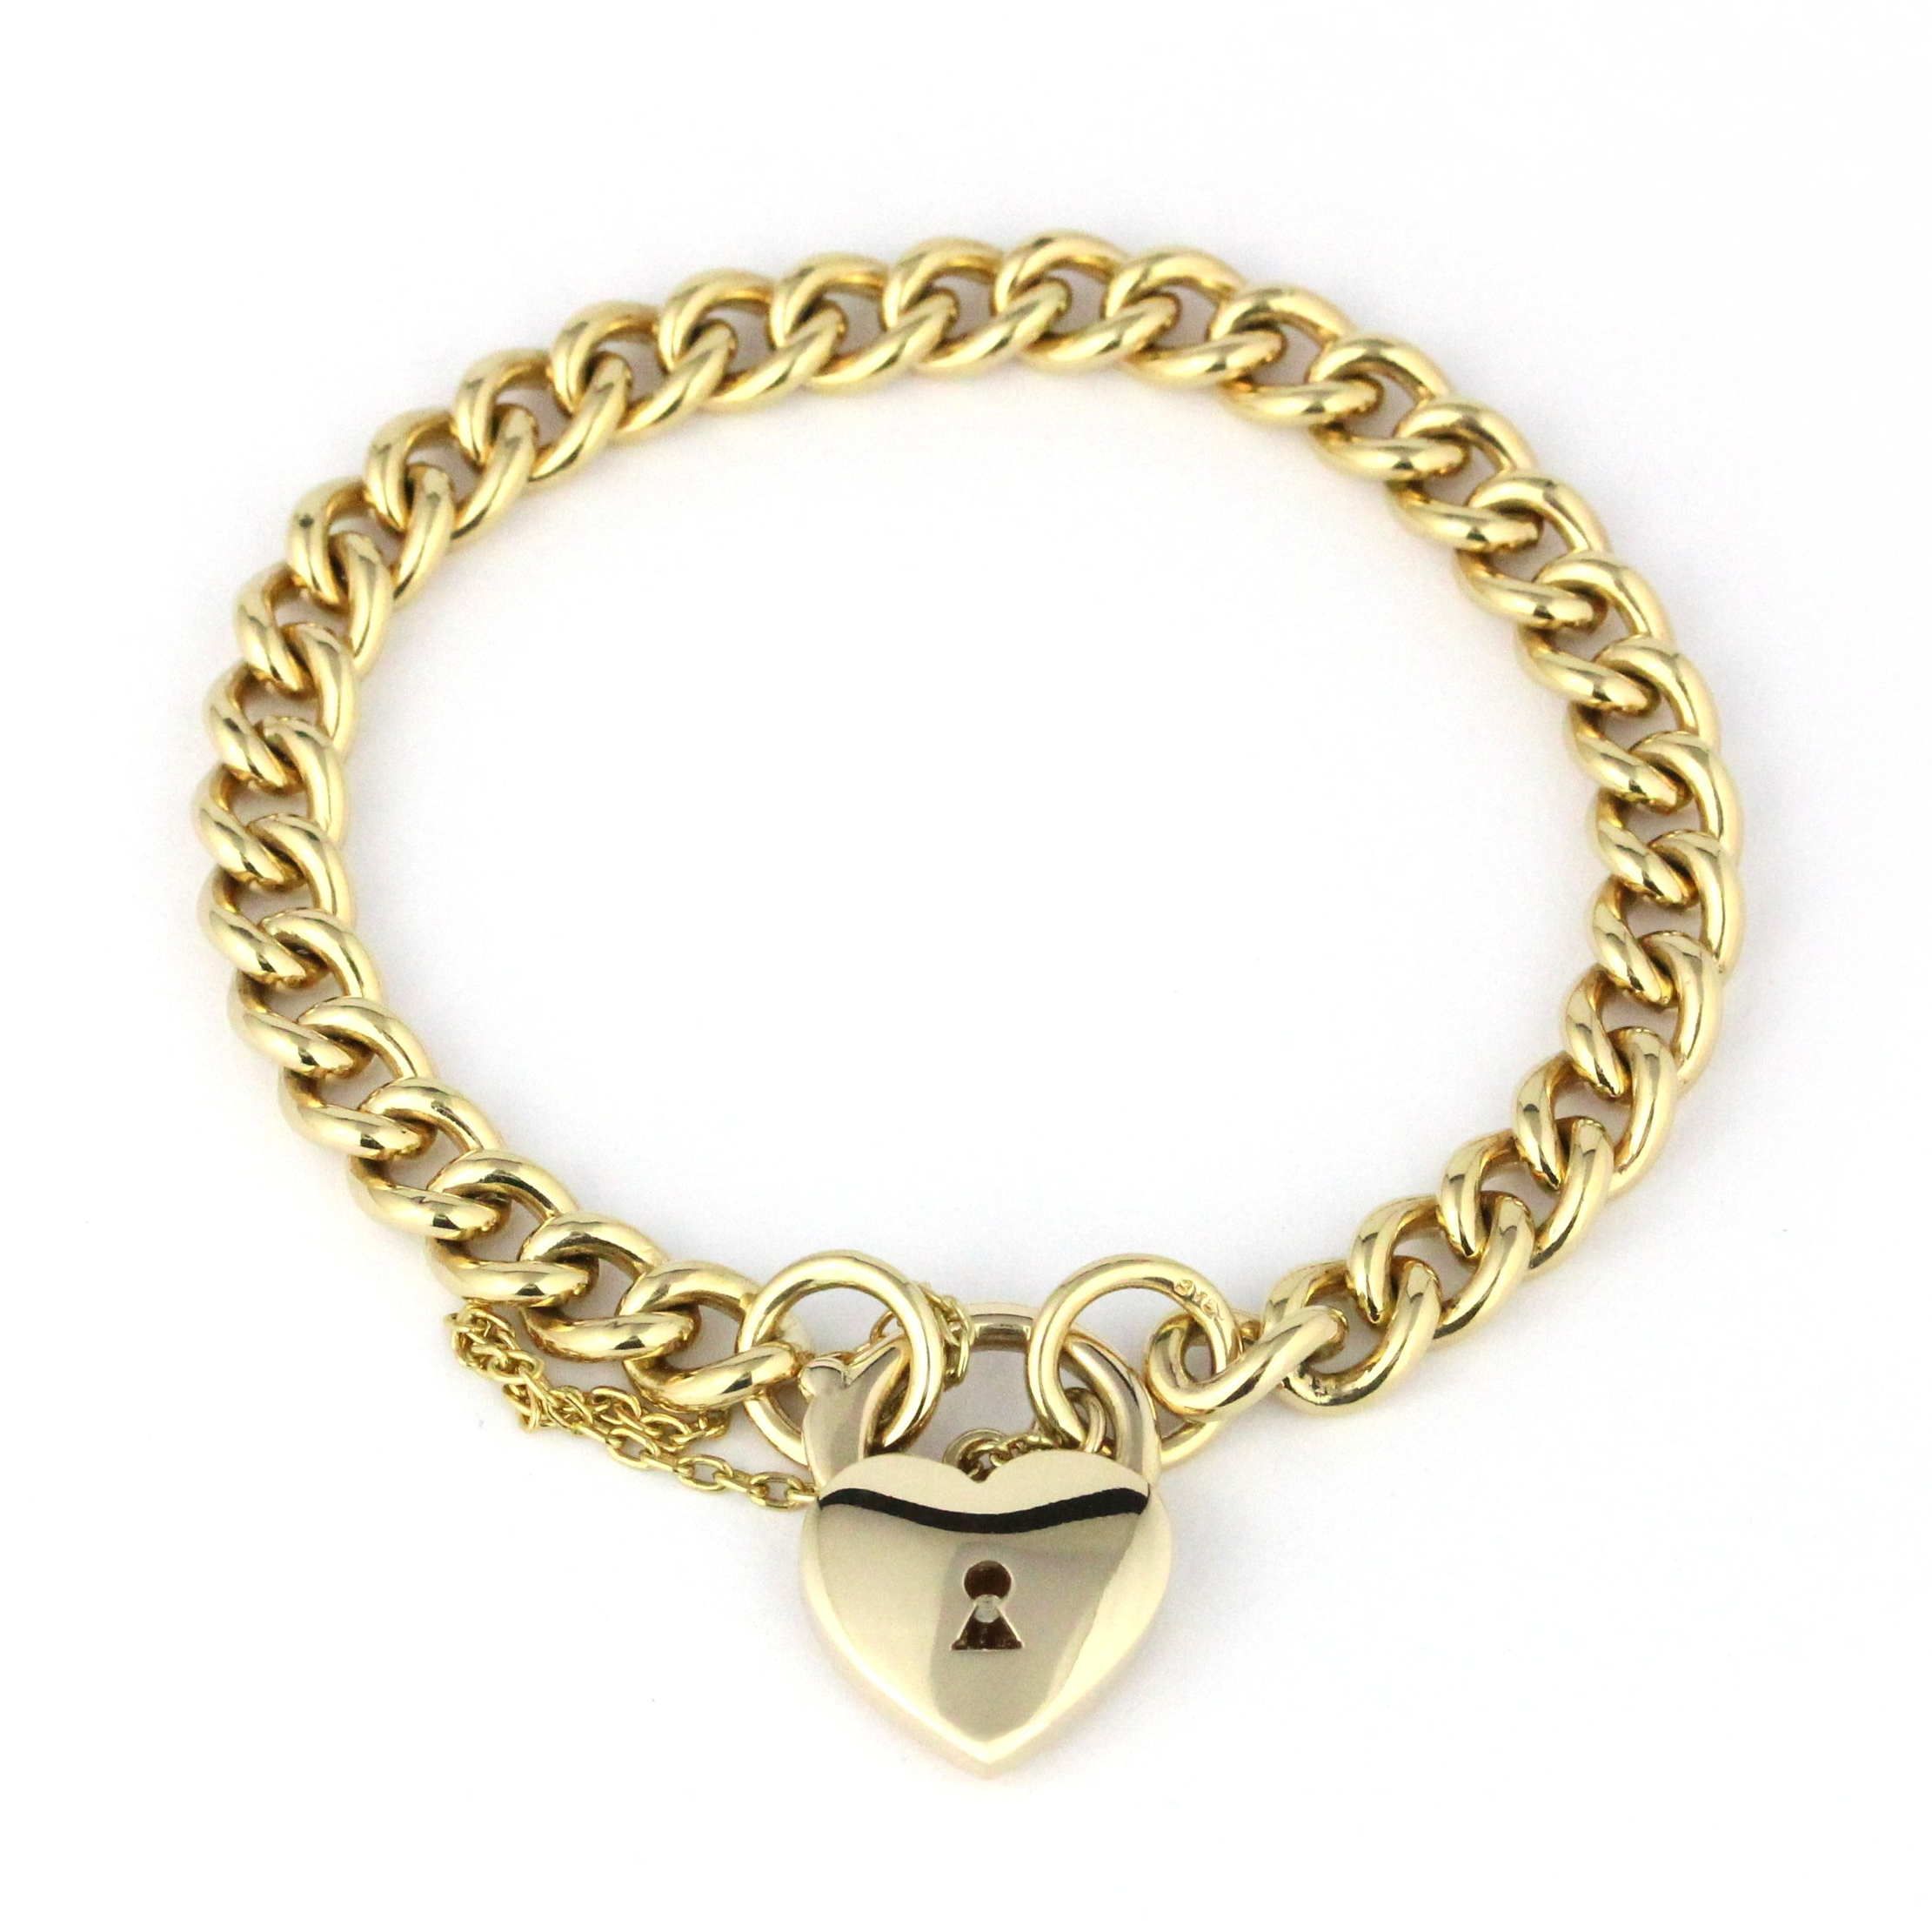 Yellow gold curb link bracelet with heart padlock clasp.